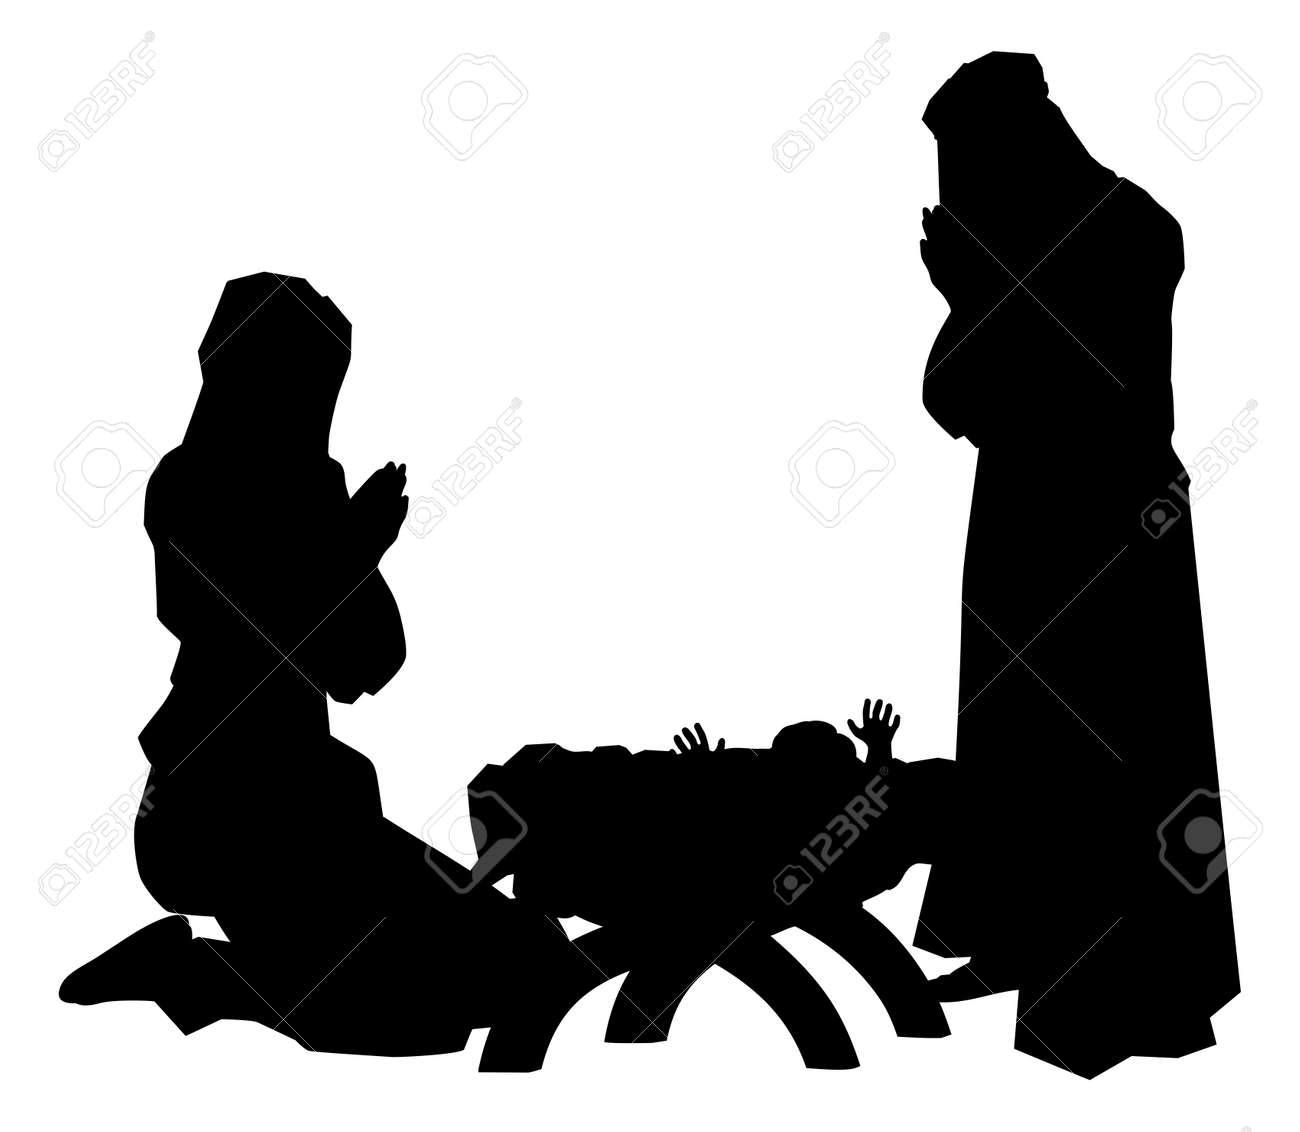 Traditional Religious Christian Christmas Nativity Scene Of Baby Jesus In The Manger With Mary And Joseph